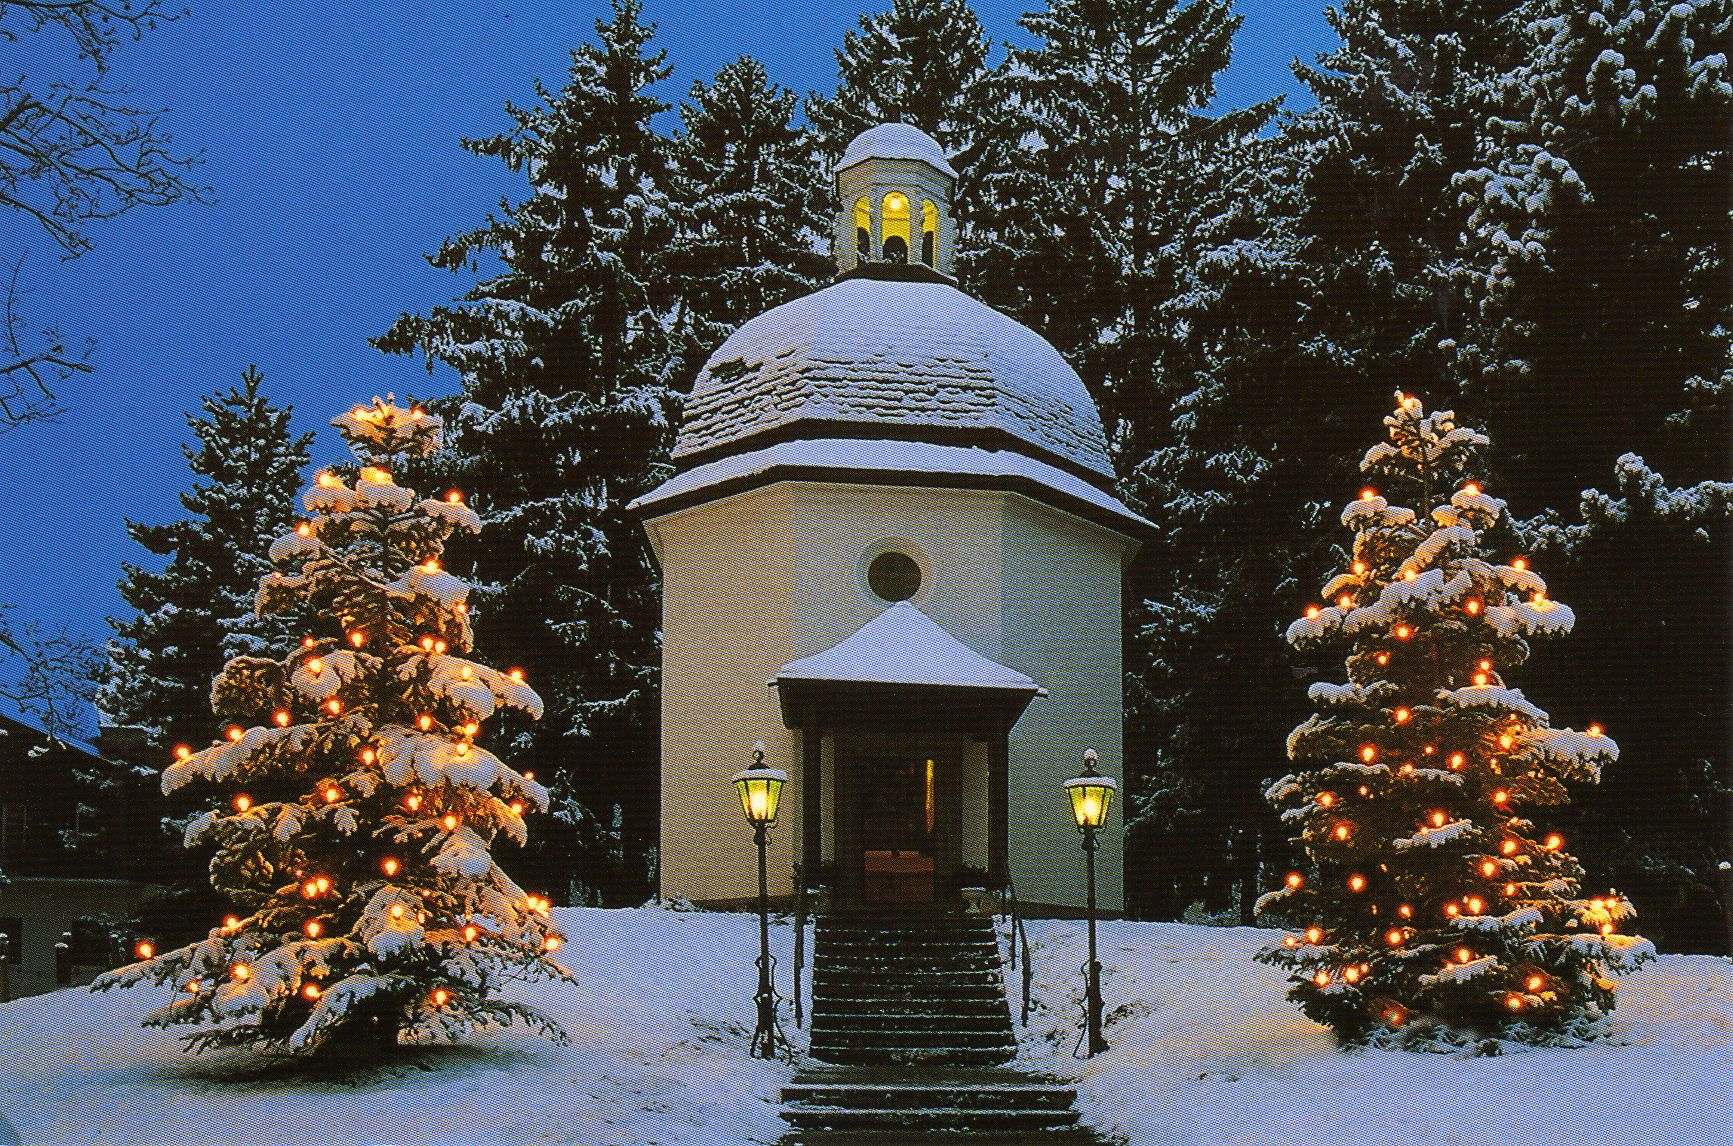 """""""Stille Nacht Kapelle"""" - The Gruber-Mohr Memorial Chapel, at the original performance location for """"Silent Night"""" ... the wonderful carol was completed on Christmas Eve, 1818, and performed on Christmas Day at the Saint Nicholaus Kirche on this site. The church was lost to fire in the early 1900's and the memorial chapel was built in its place in 1937. Oberndorf, Austria - near Salzburg."""